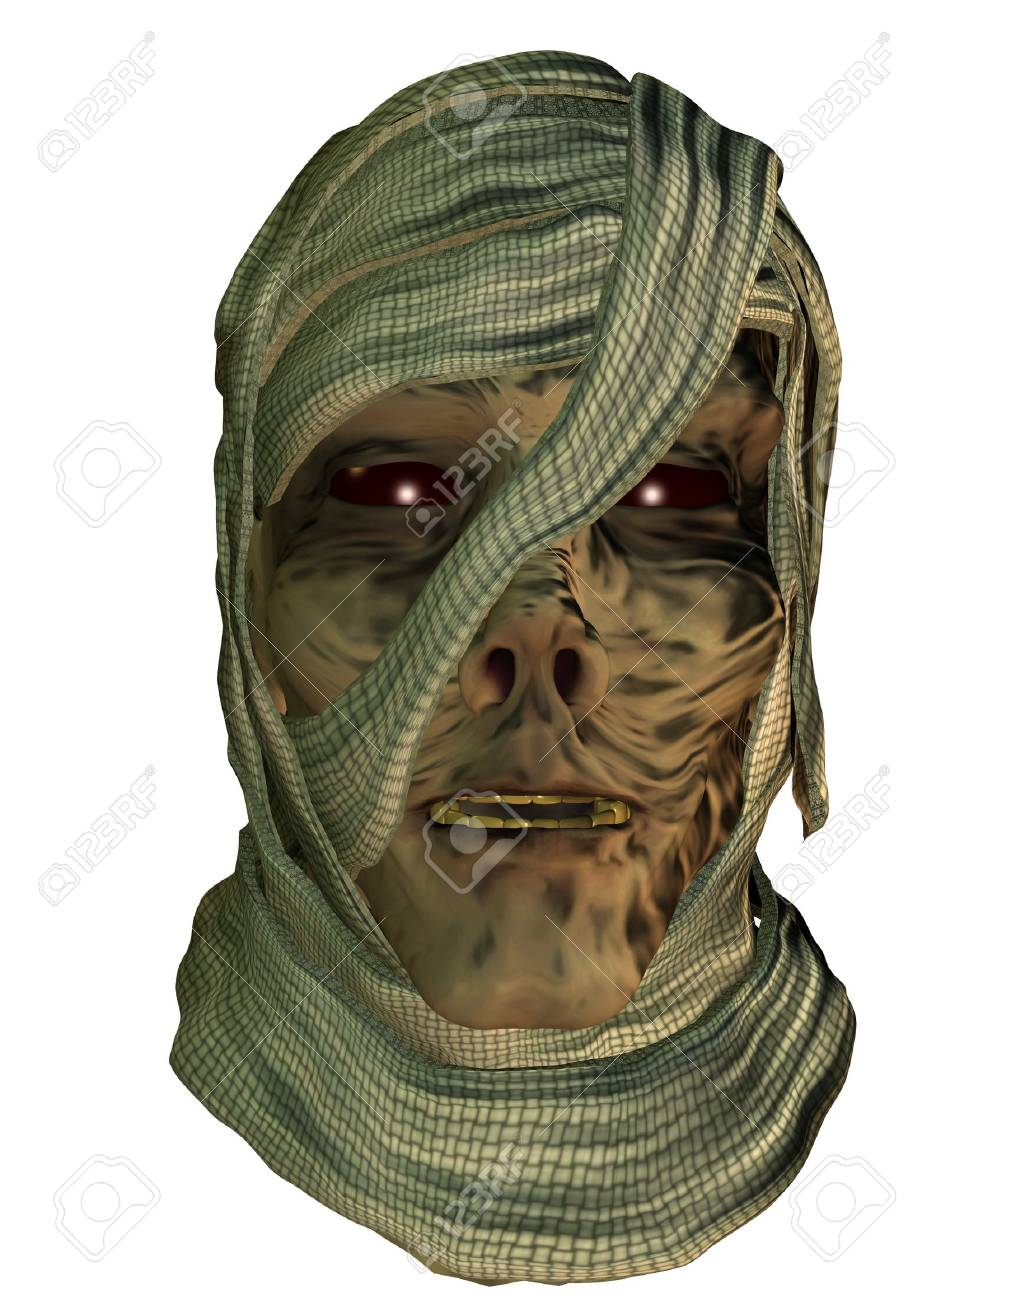 3d rendering of a mummy as illustration Stock Photo - 15716741